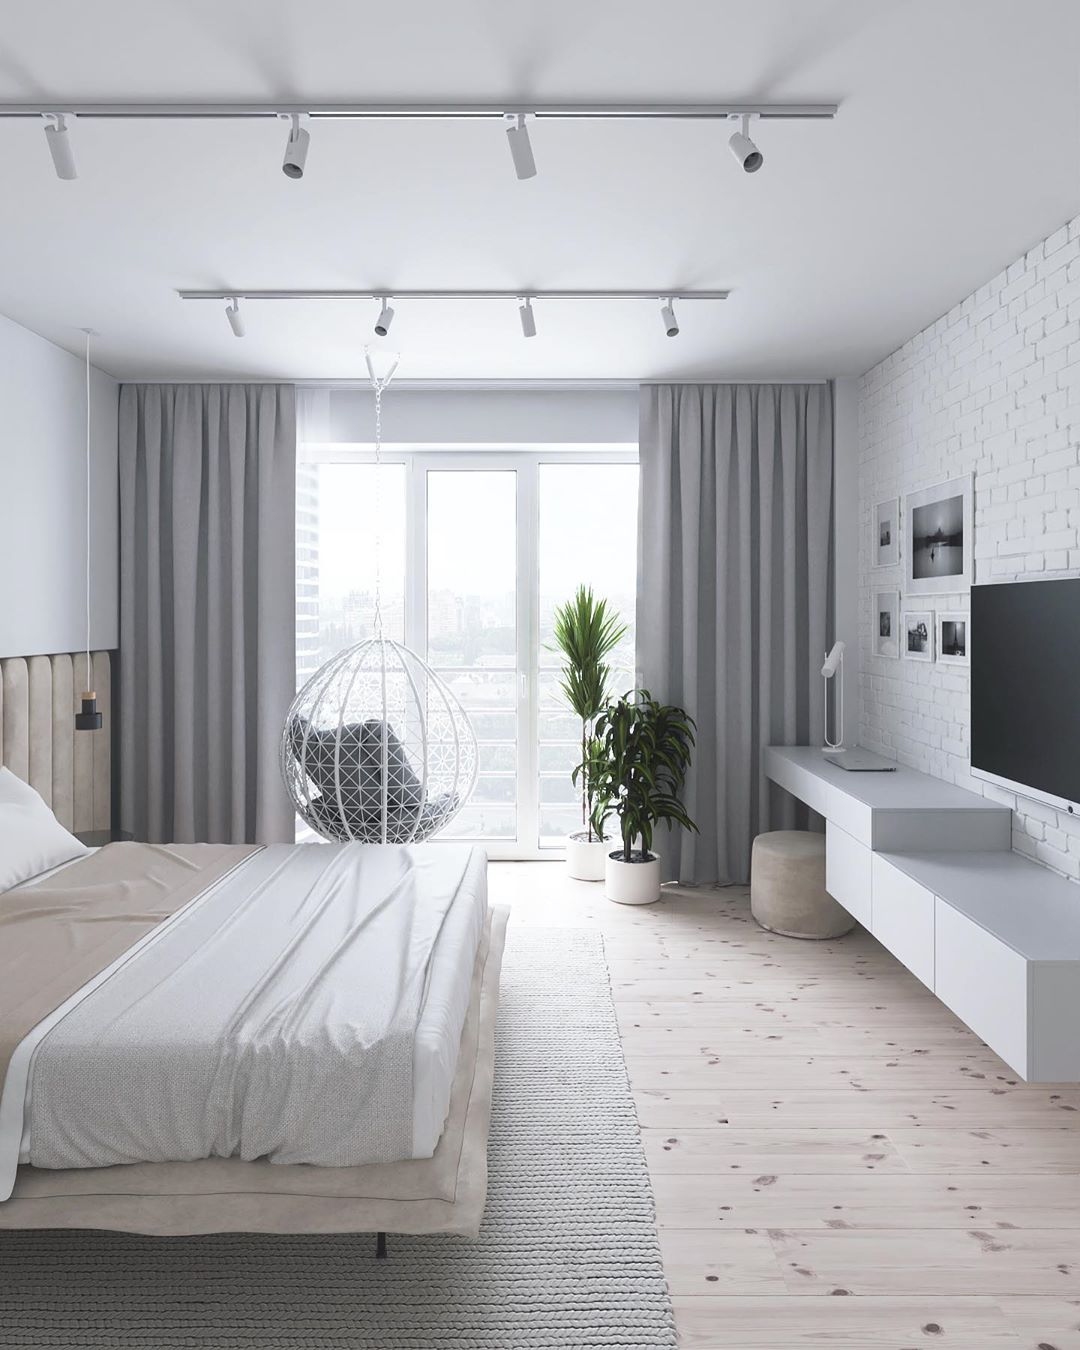 The Bedroom Design For My New And Very Nice Object Is So